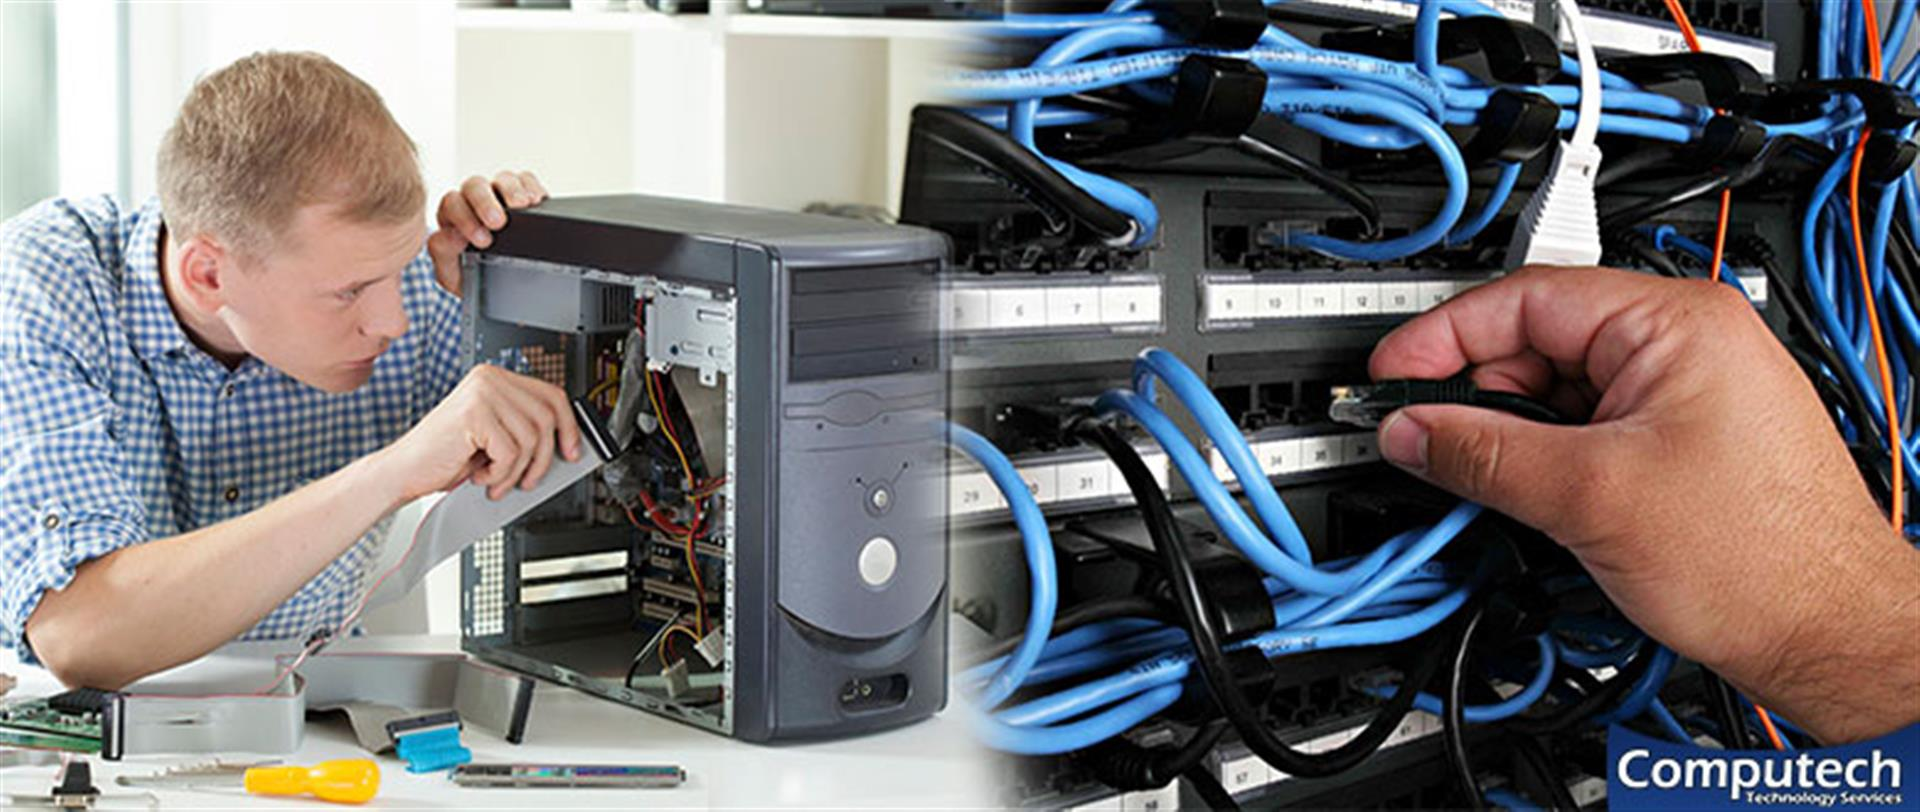 Madisonville Tennessee On Site PC & Printer Repairs, Networking, Voice & Data Cabling Services